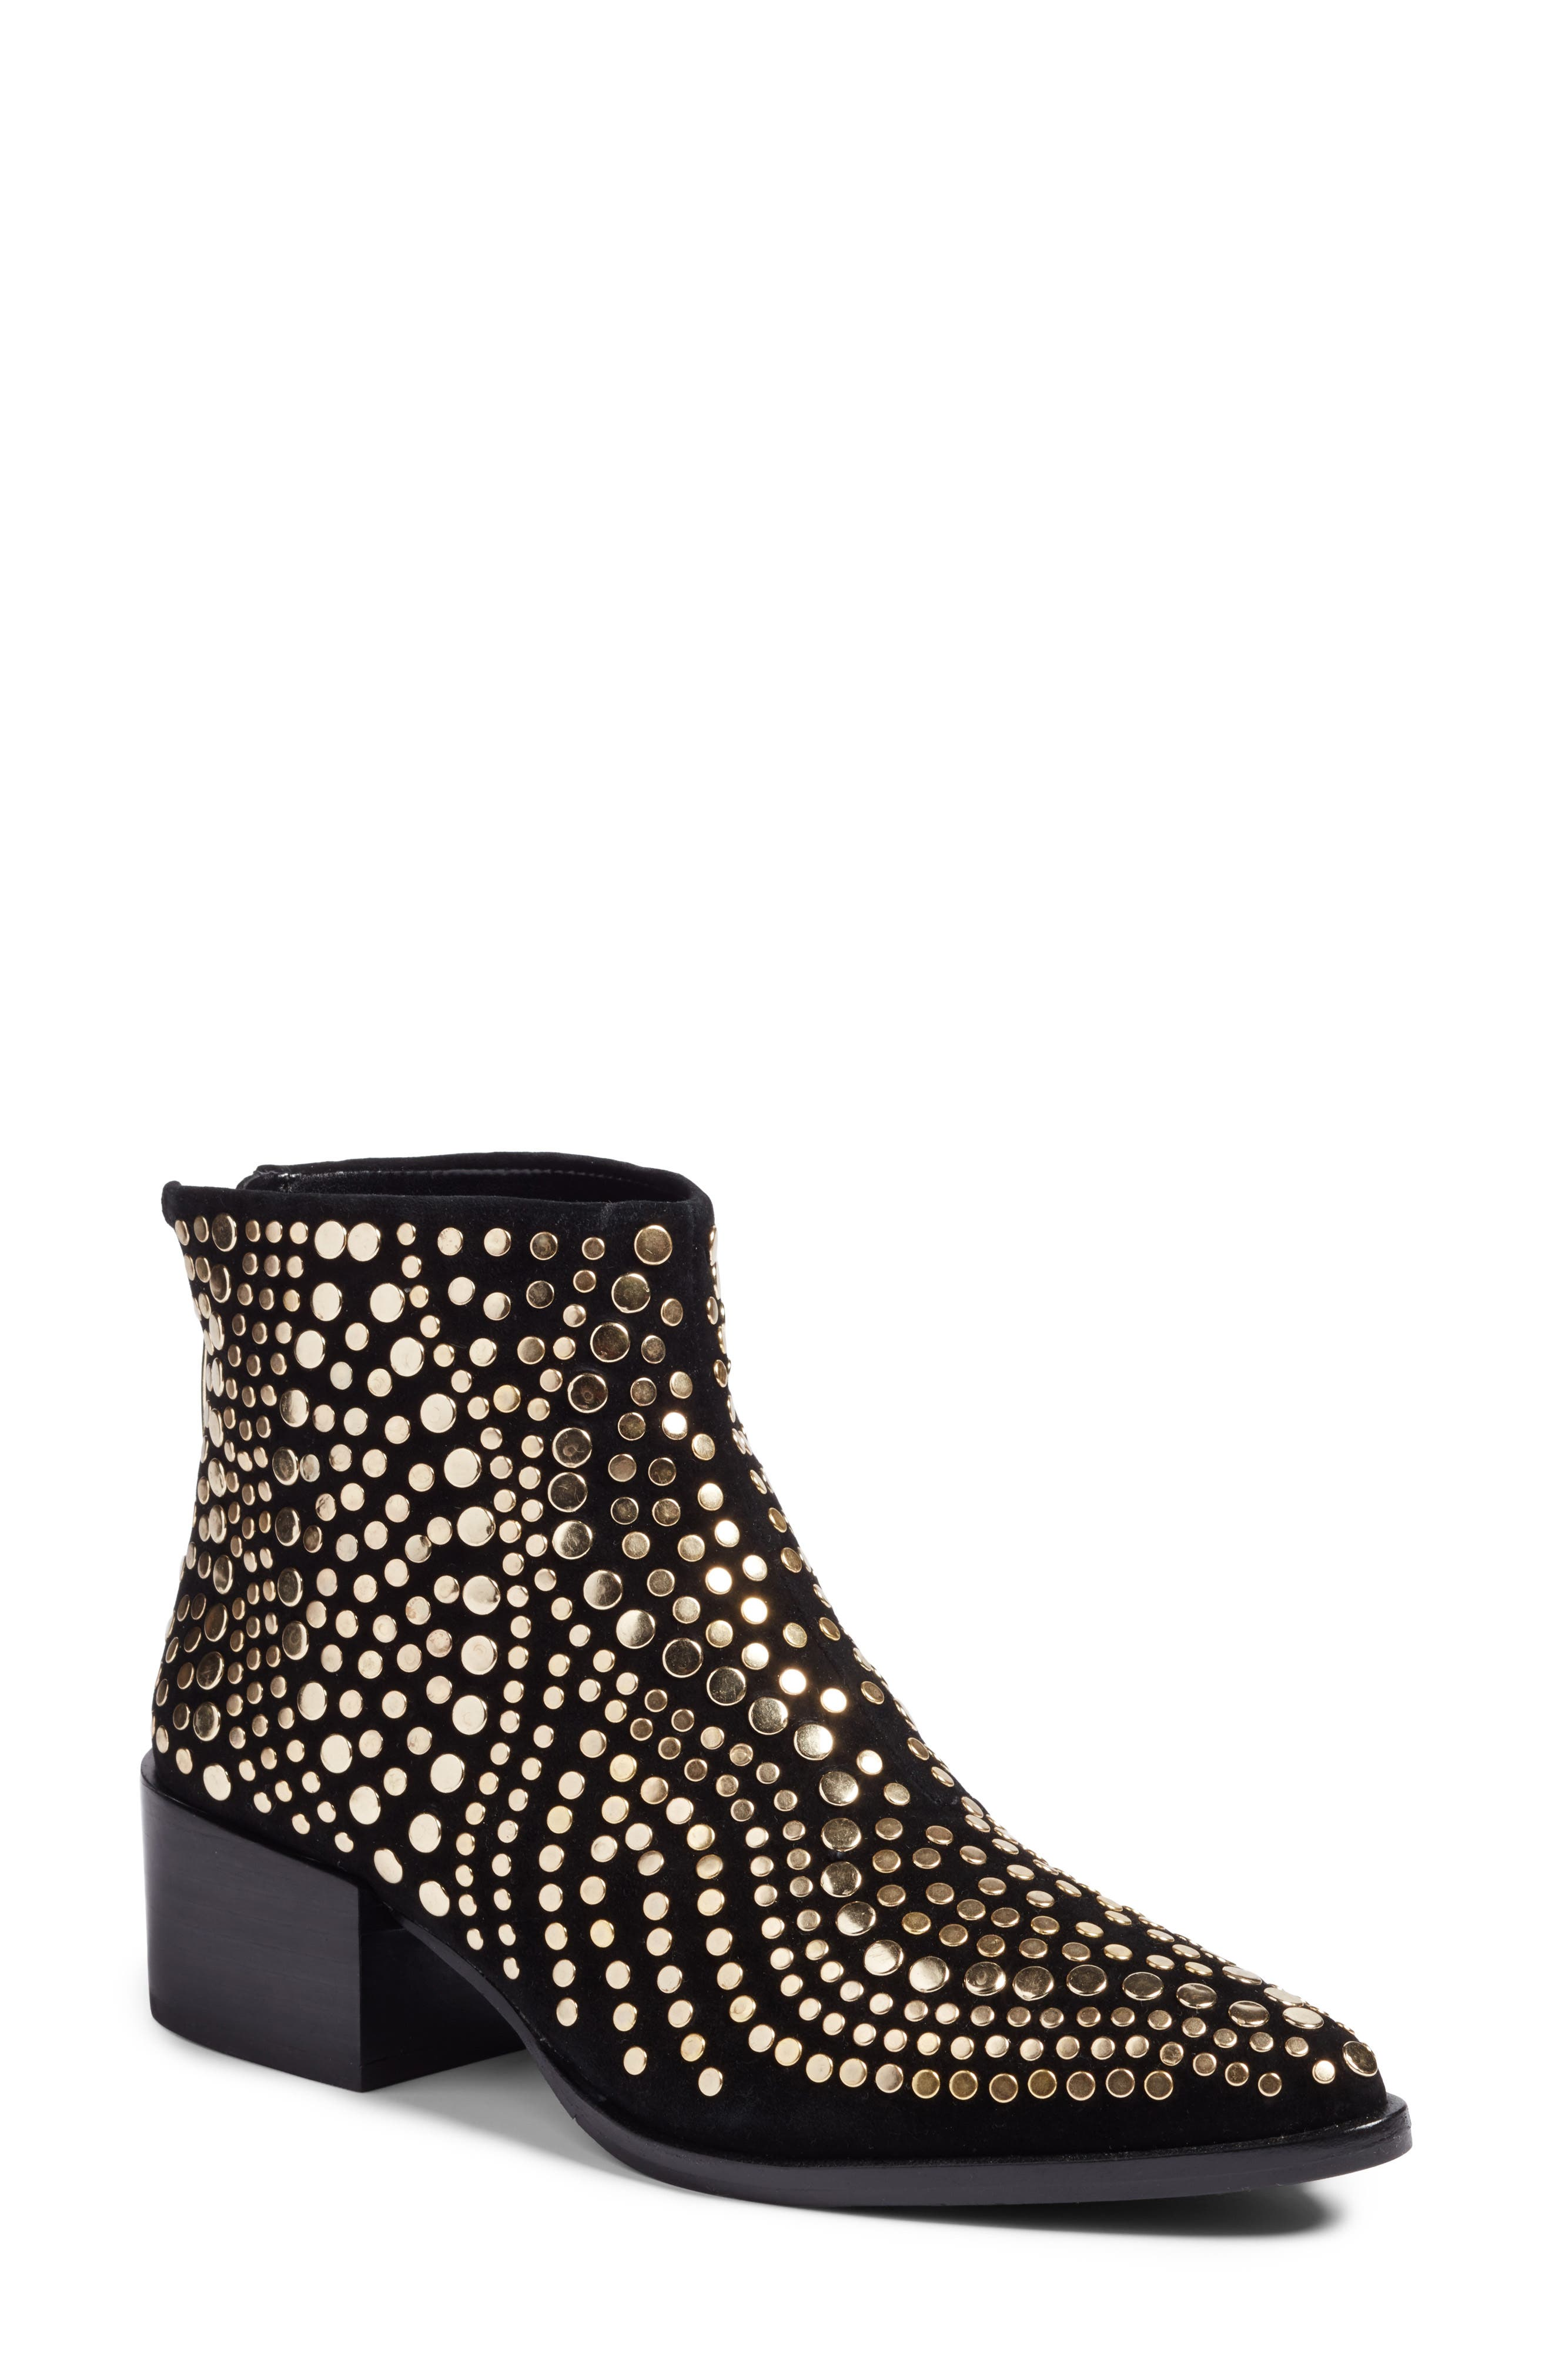 Edenny Studded Pointy Toe Bootie,                         Main,                         color, 002